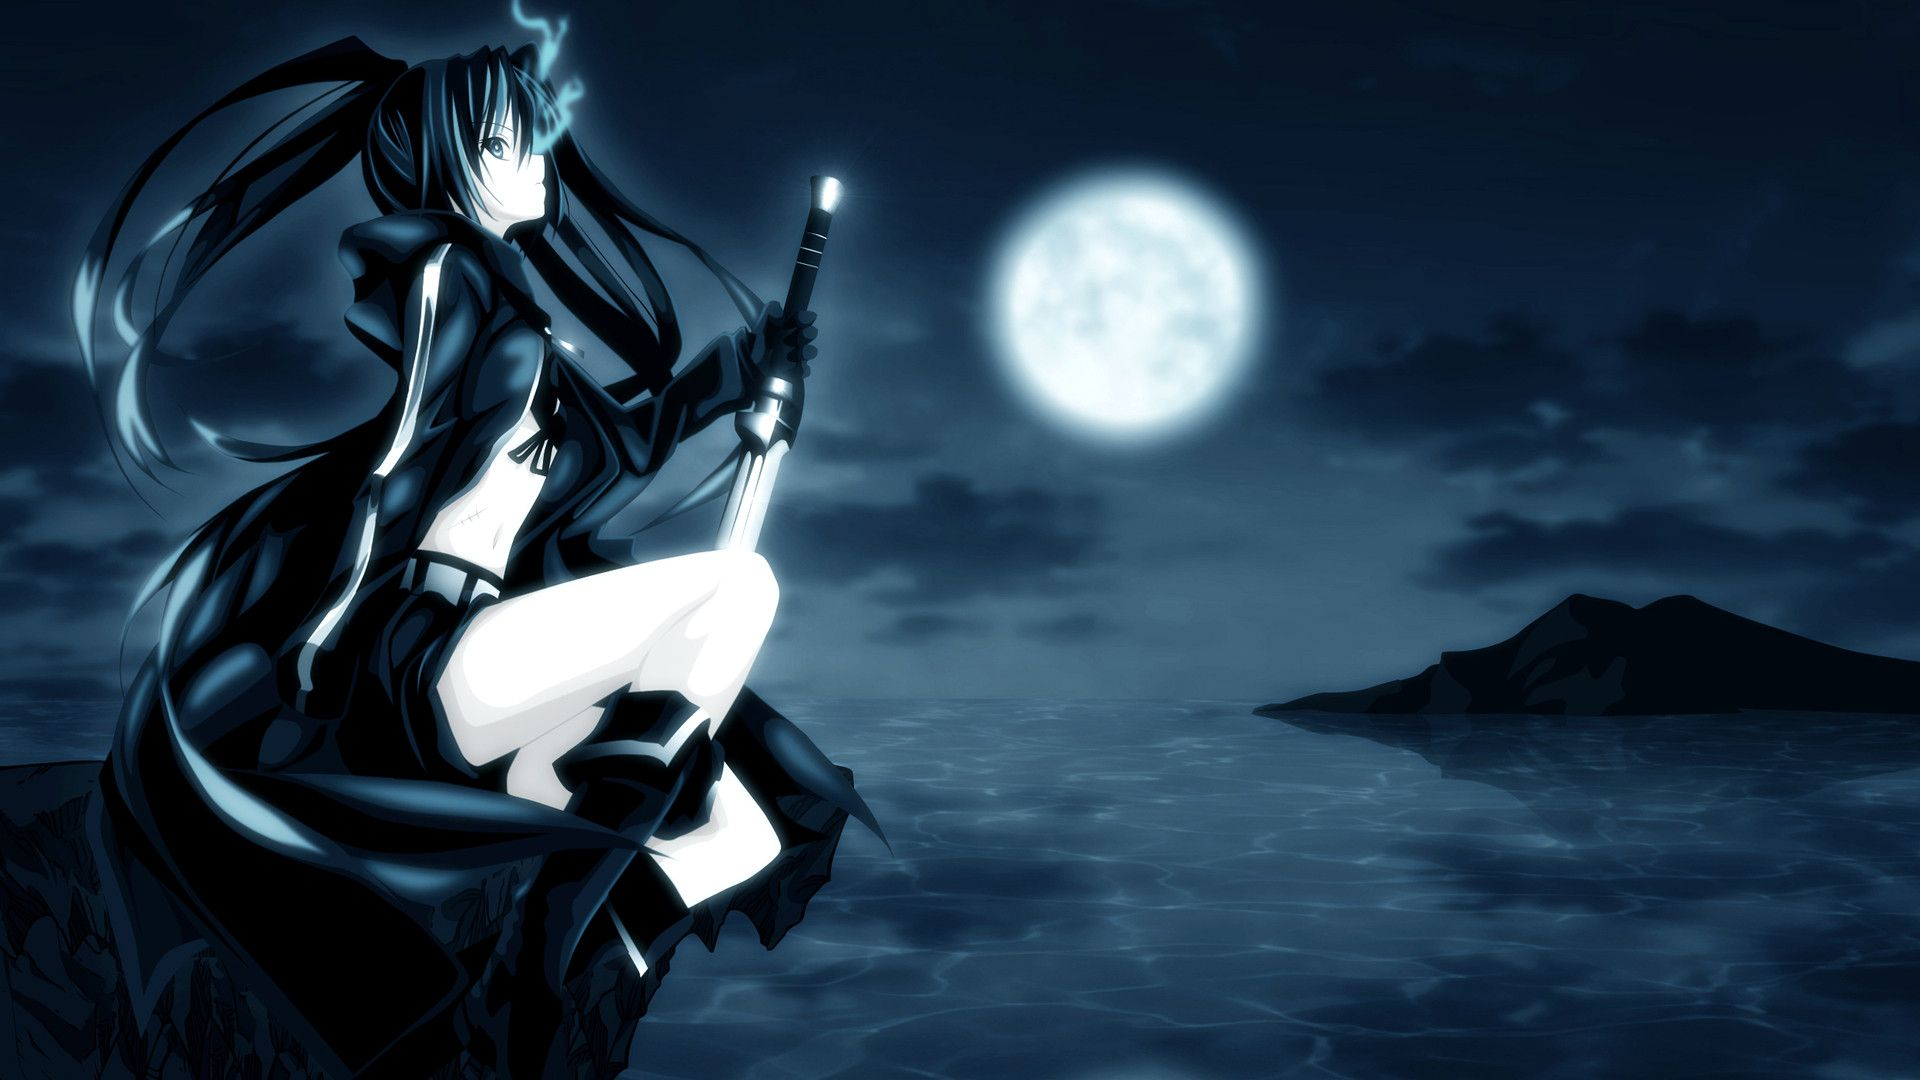 Cool Anime Wallpapers HD 1920x1080   HD Wallpapers 1920x1080